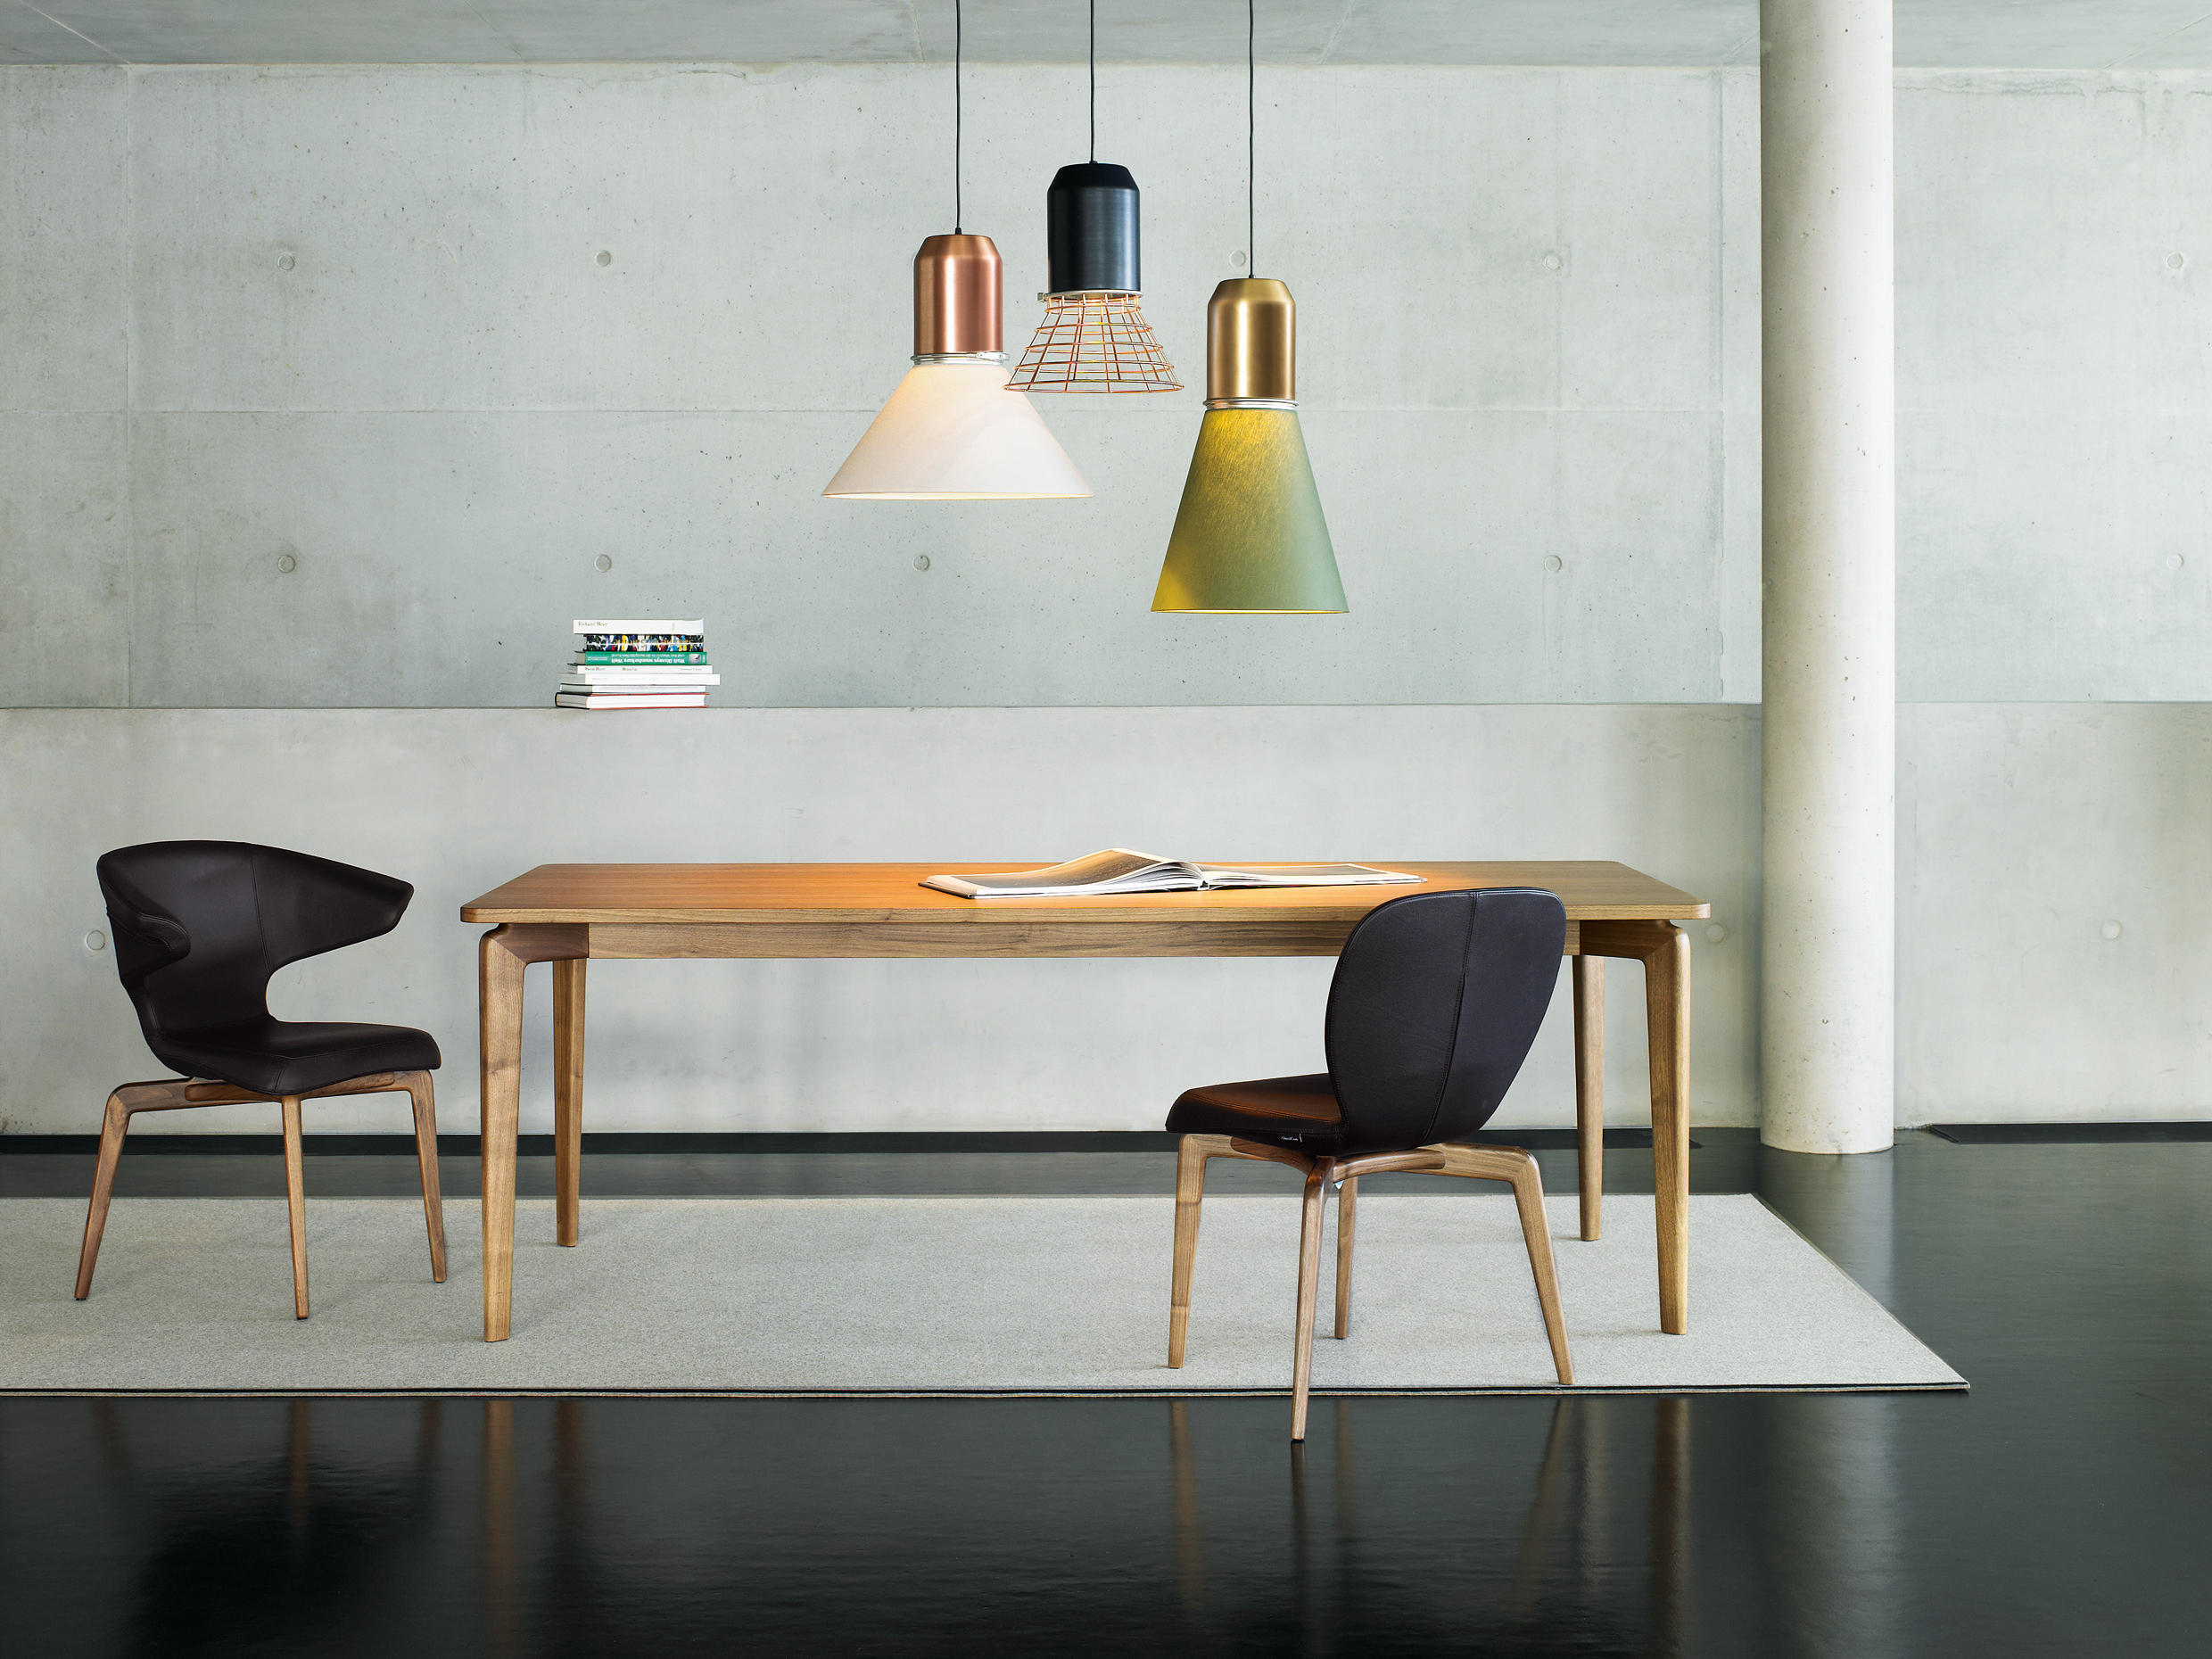 Bell Light by ClassiCon ... & BELL LIGHT - General lighting from ClassiCon | Architonic azcodes.com